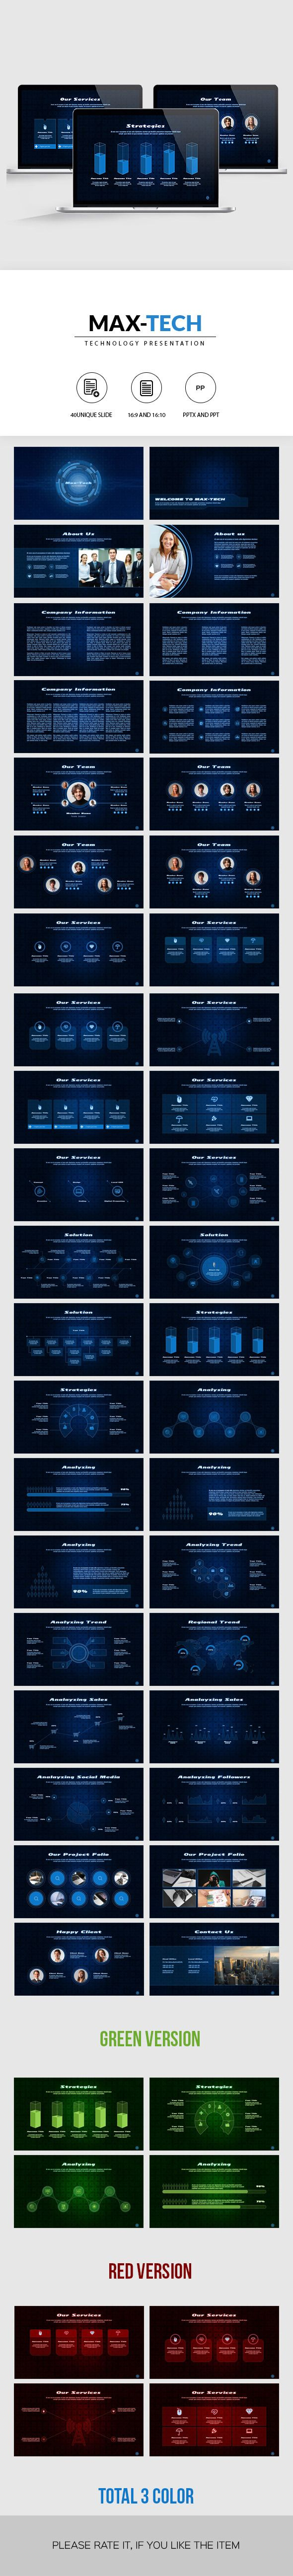 Max-Tech | Technology PowerPoint Presentation - Business PowerPoint Templates